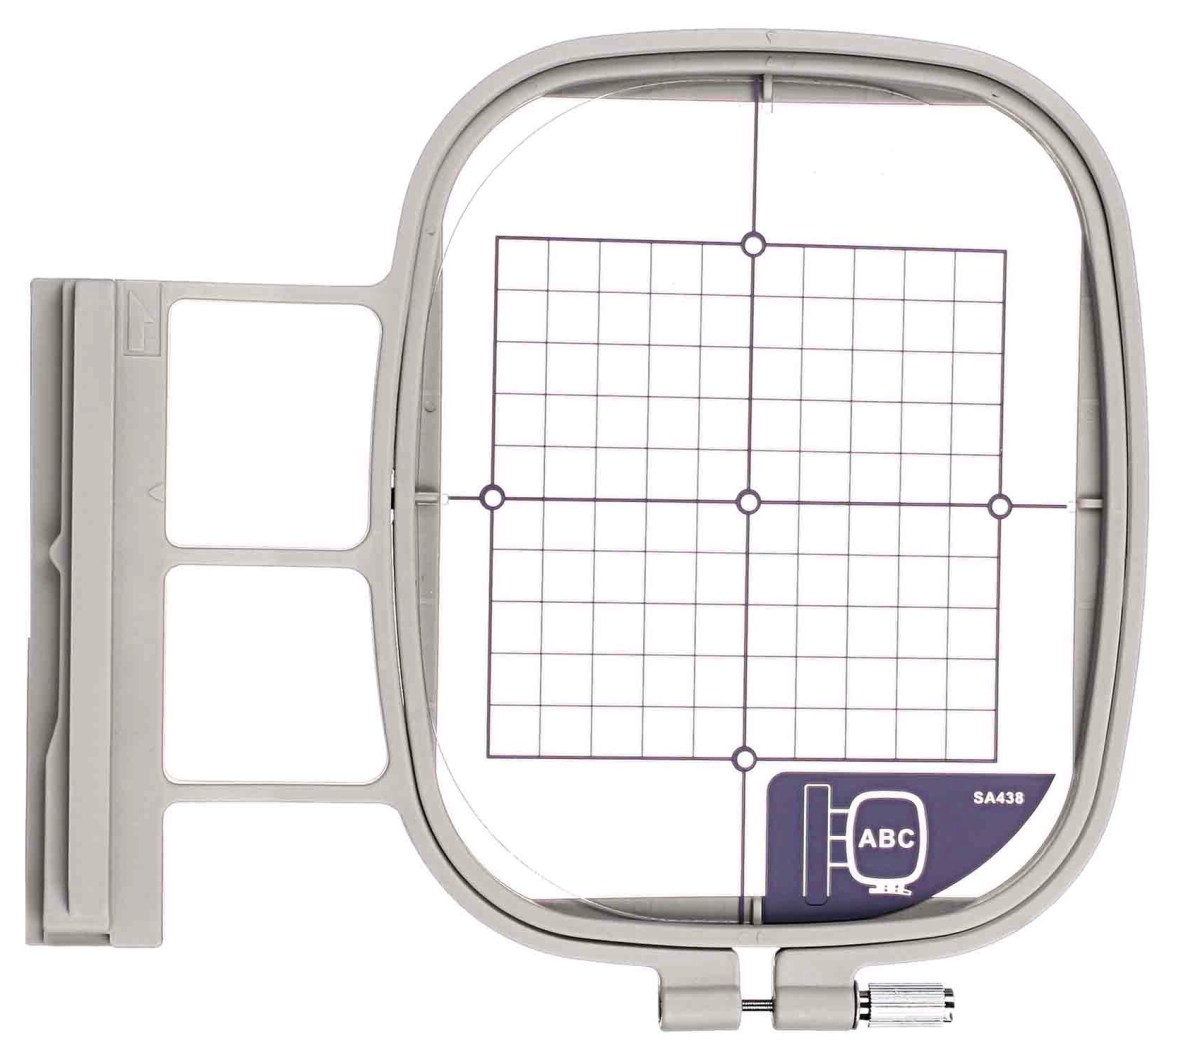 4 215 4 Sa438 Replacement Hoop Boxer Craft House